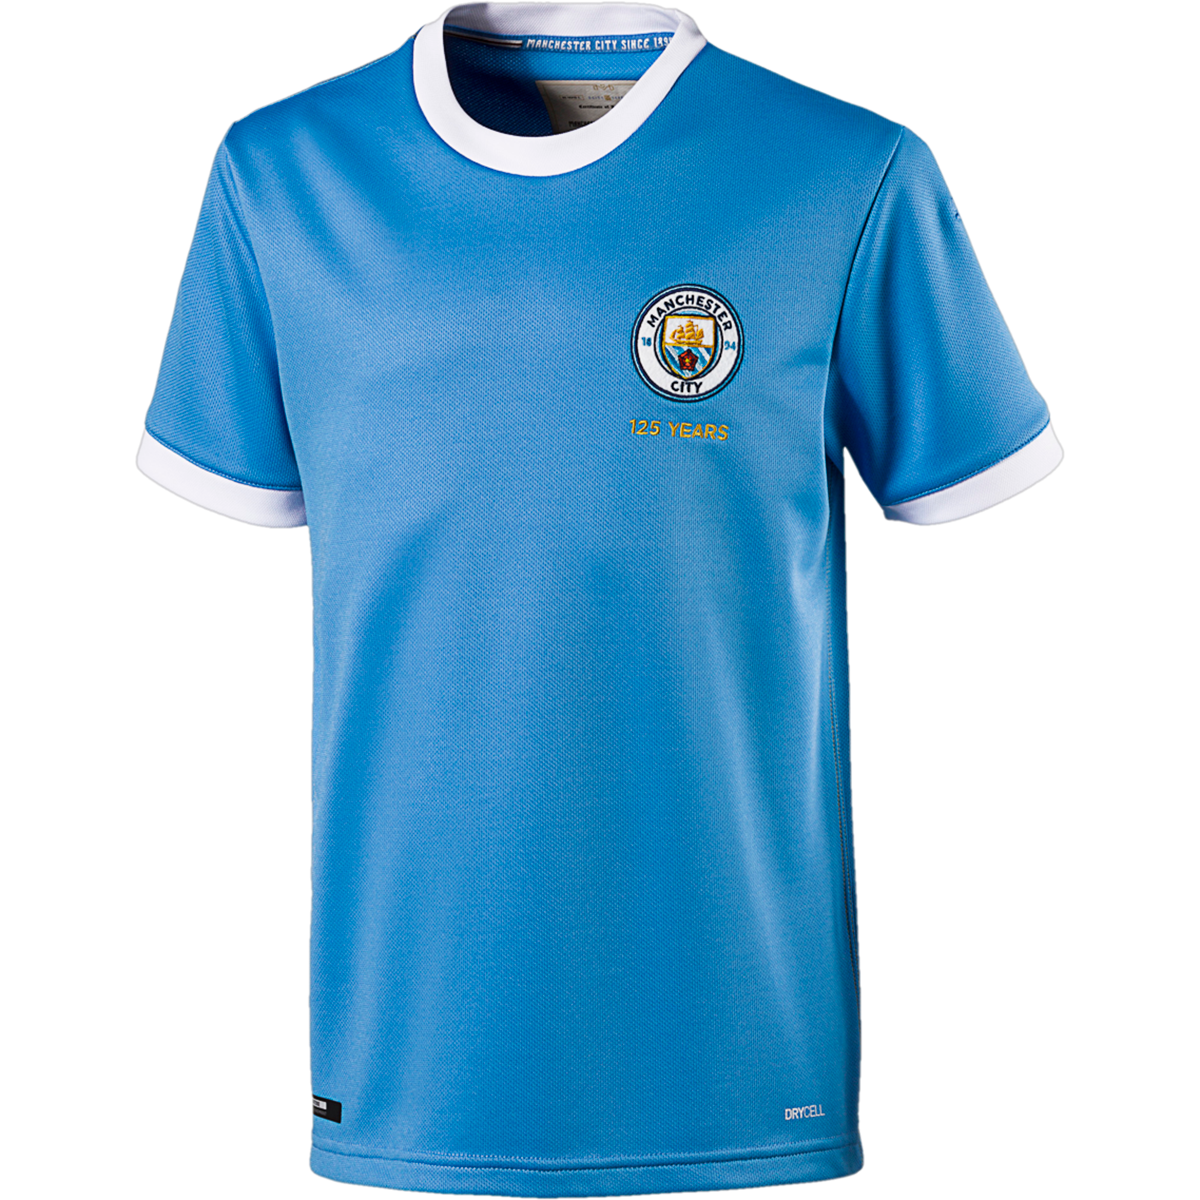 PUMA Manchester City 125th Anniversary Youth Jerseyyl